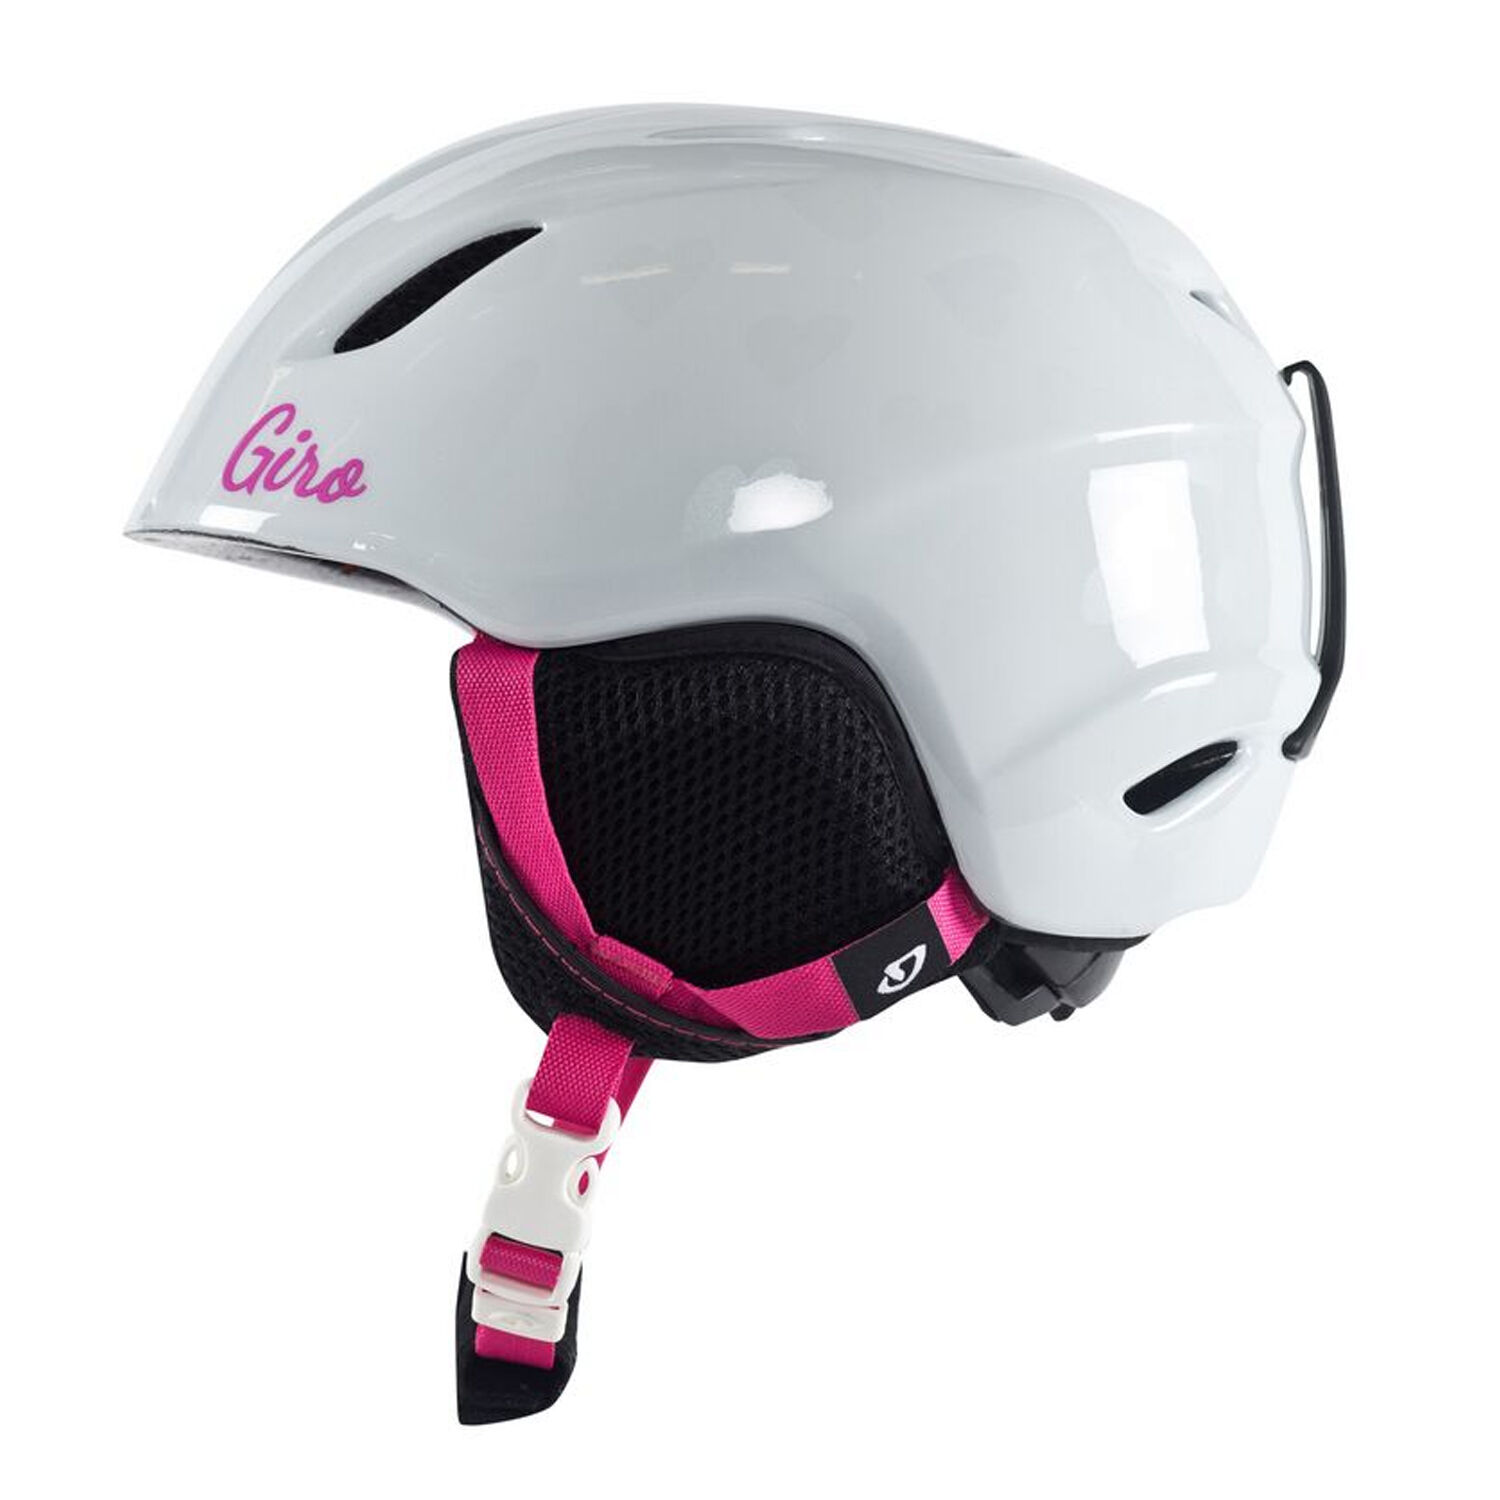 GIRO 2016 Youth Snowboard Snow White Hearts LAUNCH HELMET